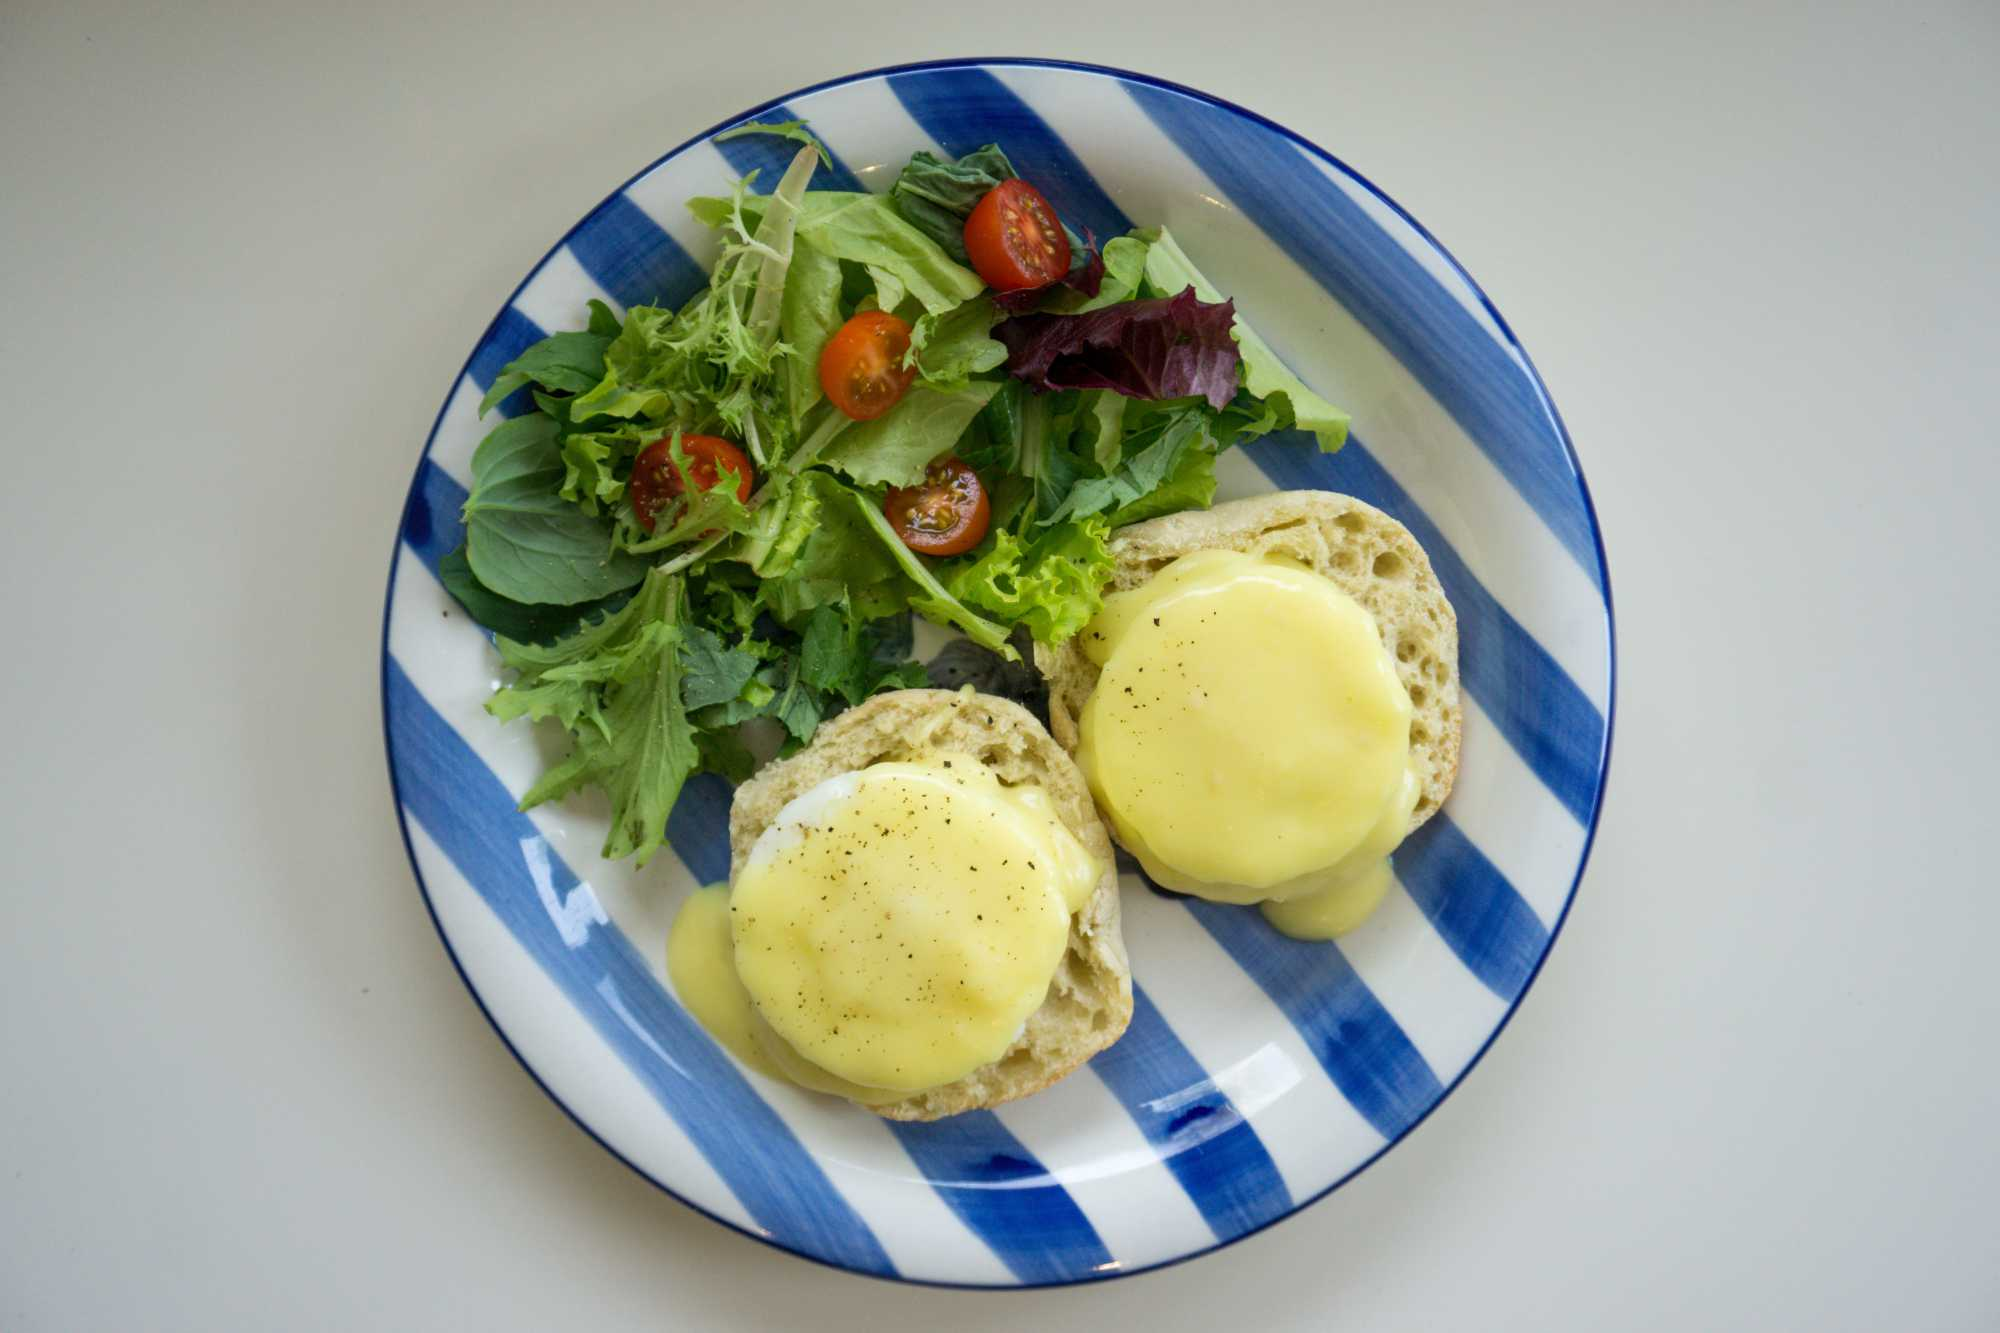 Eggs Benedict - one of Susan's signature breakfasts at The Empty Nest in Prince Edward County